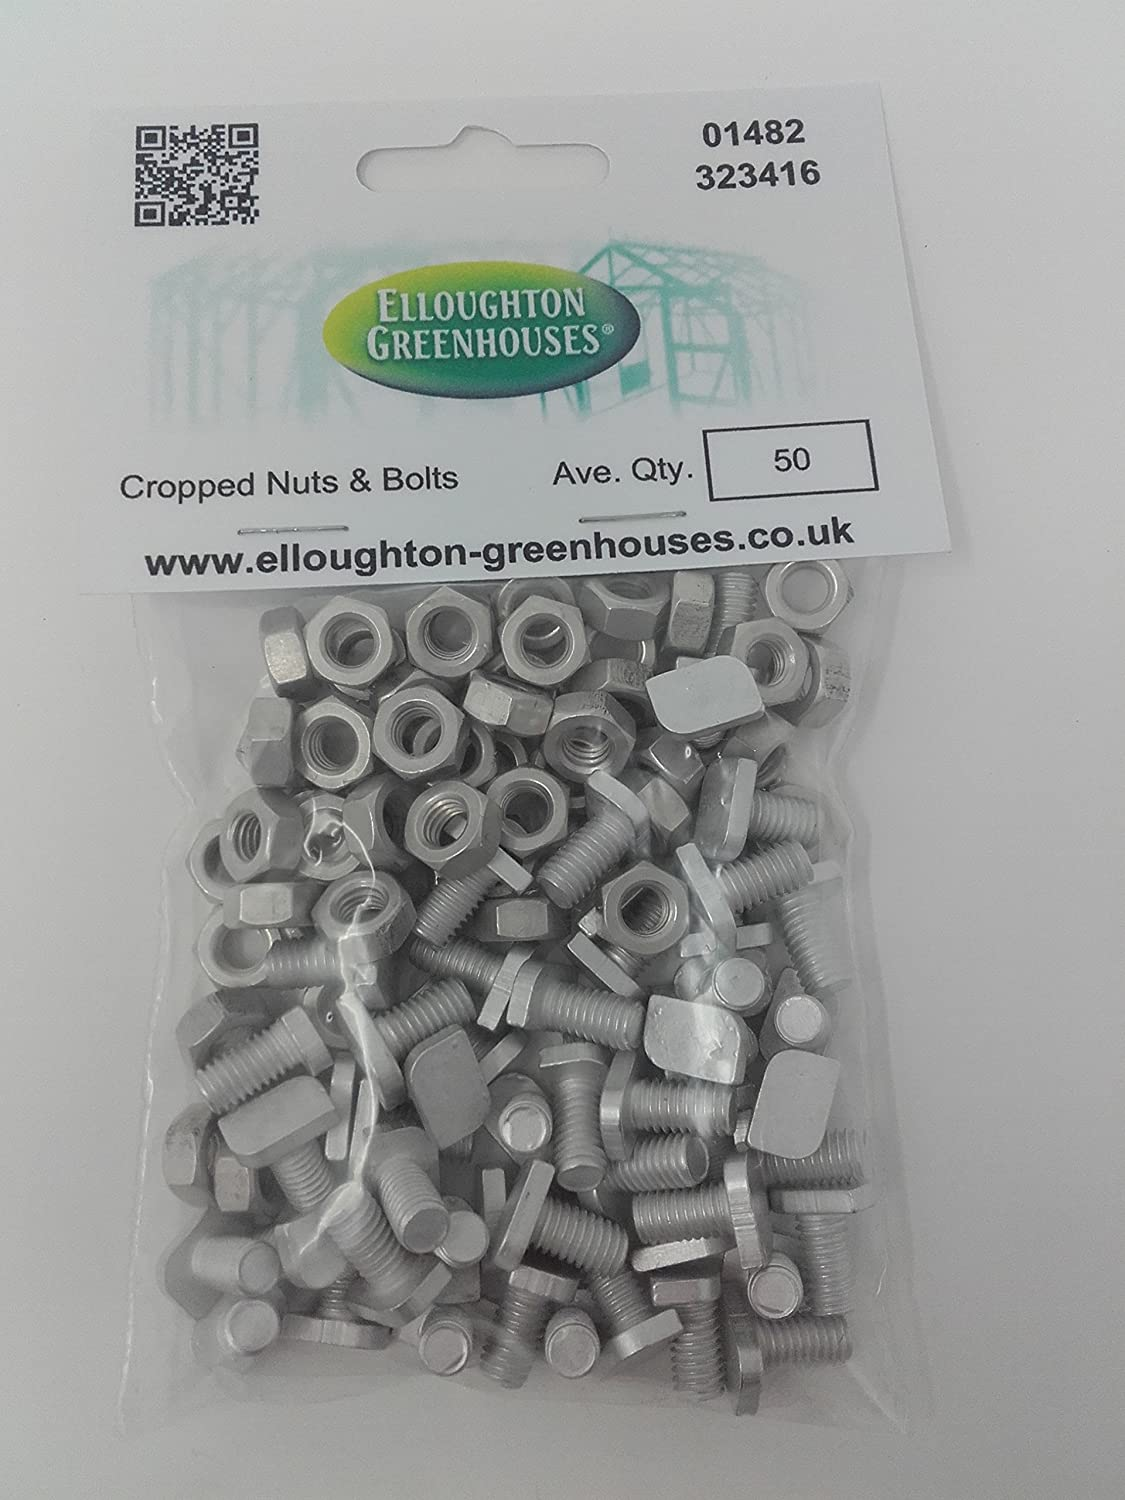 50 Cropped Head Aluminium Greenhouse Nuts & Bolts Genuine Elite Greenhouses Parts Elloughton Greenhouses®